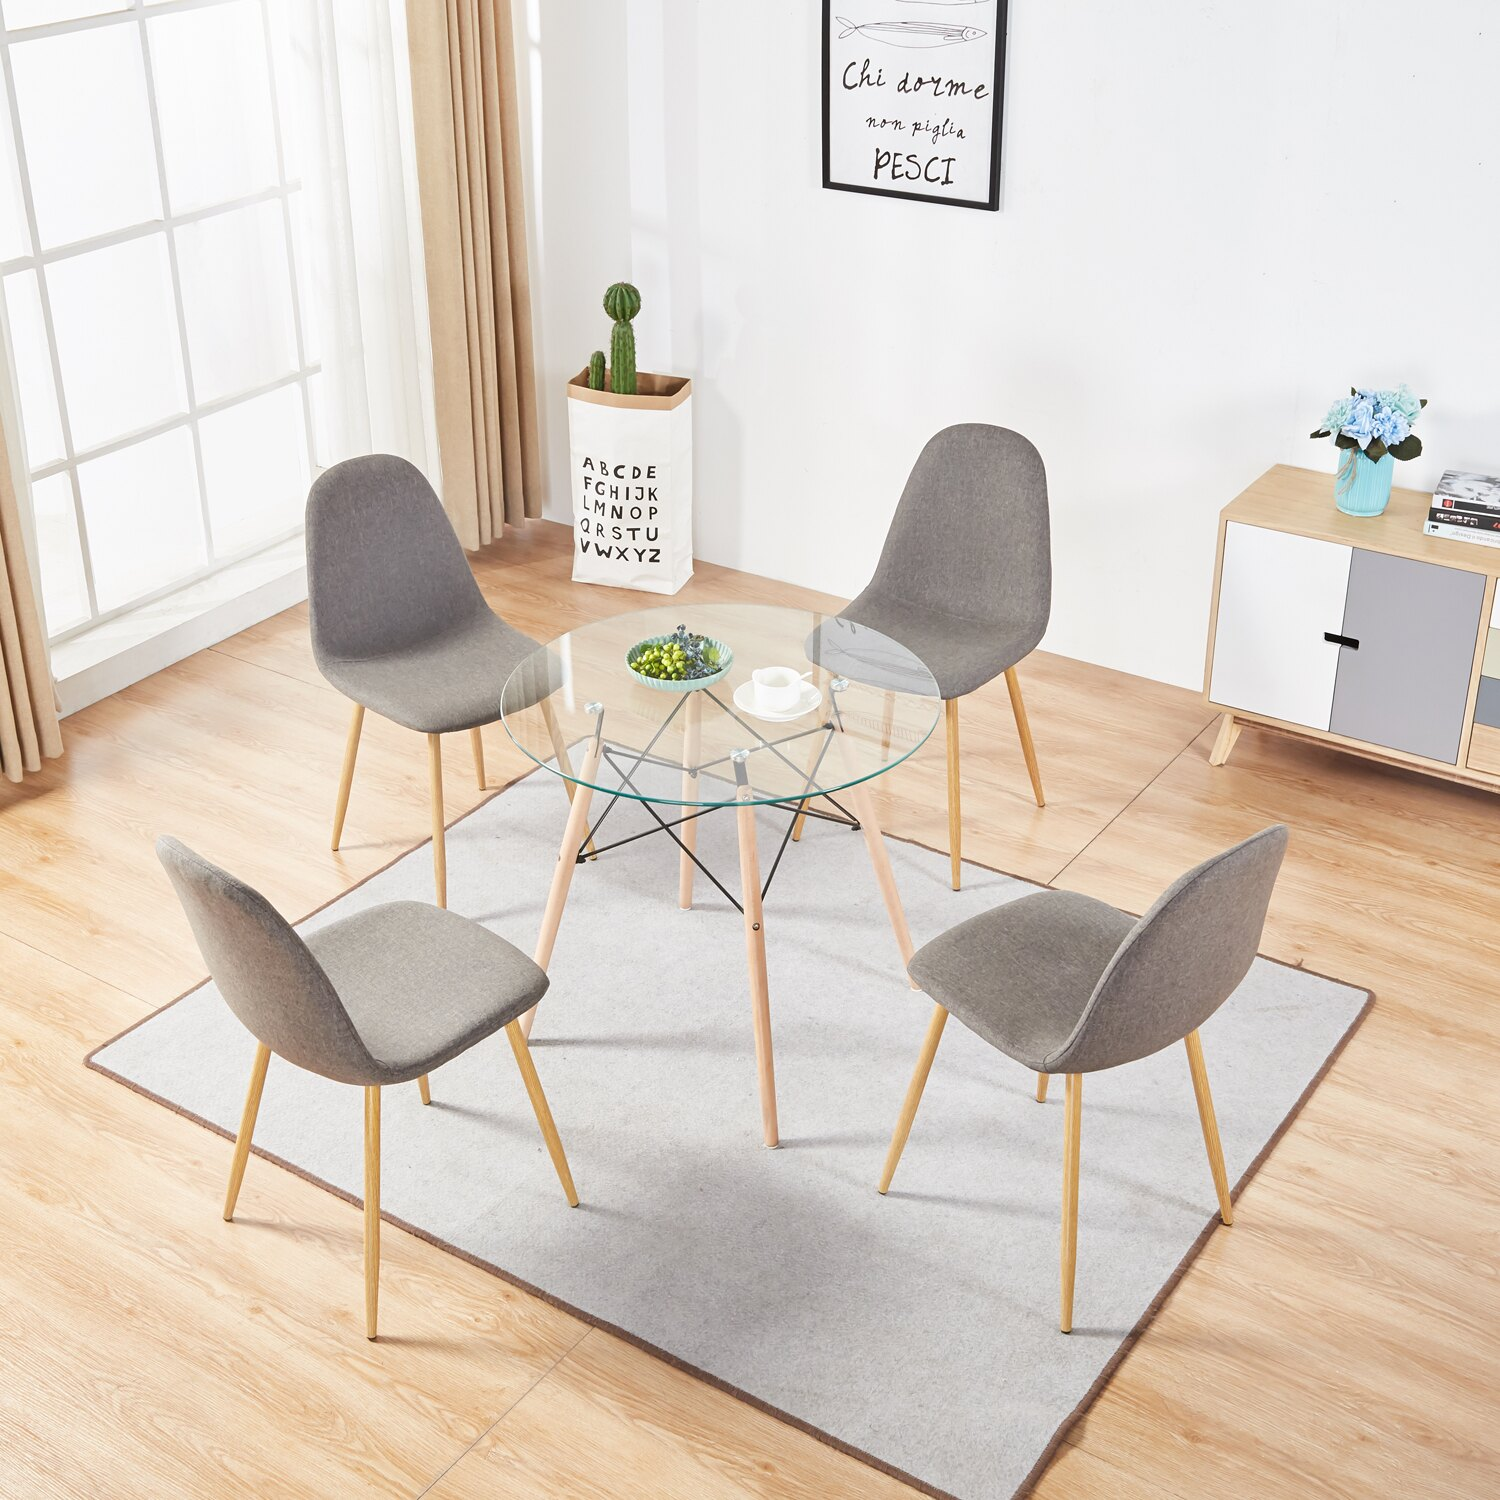 Table Kitchen Mcombo Dining Side Chairs Set Of 4 Dining Table Round Clear Glass Table For Kitchen Dining Room